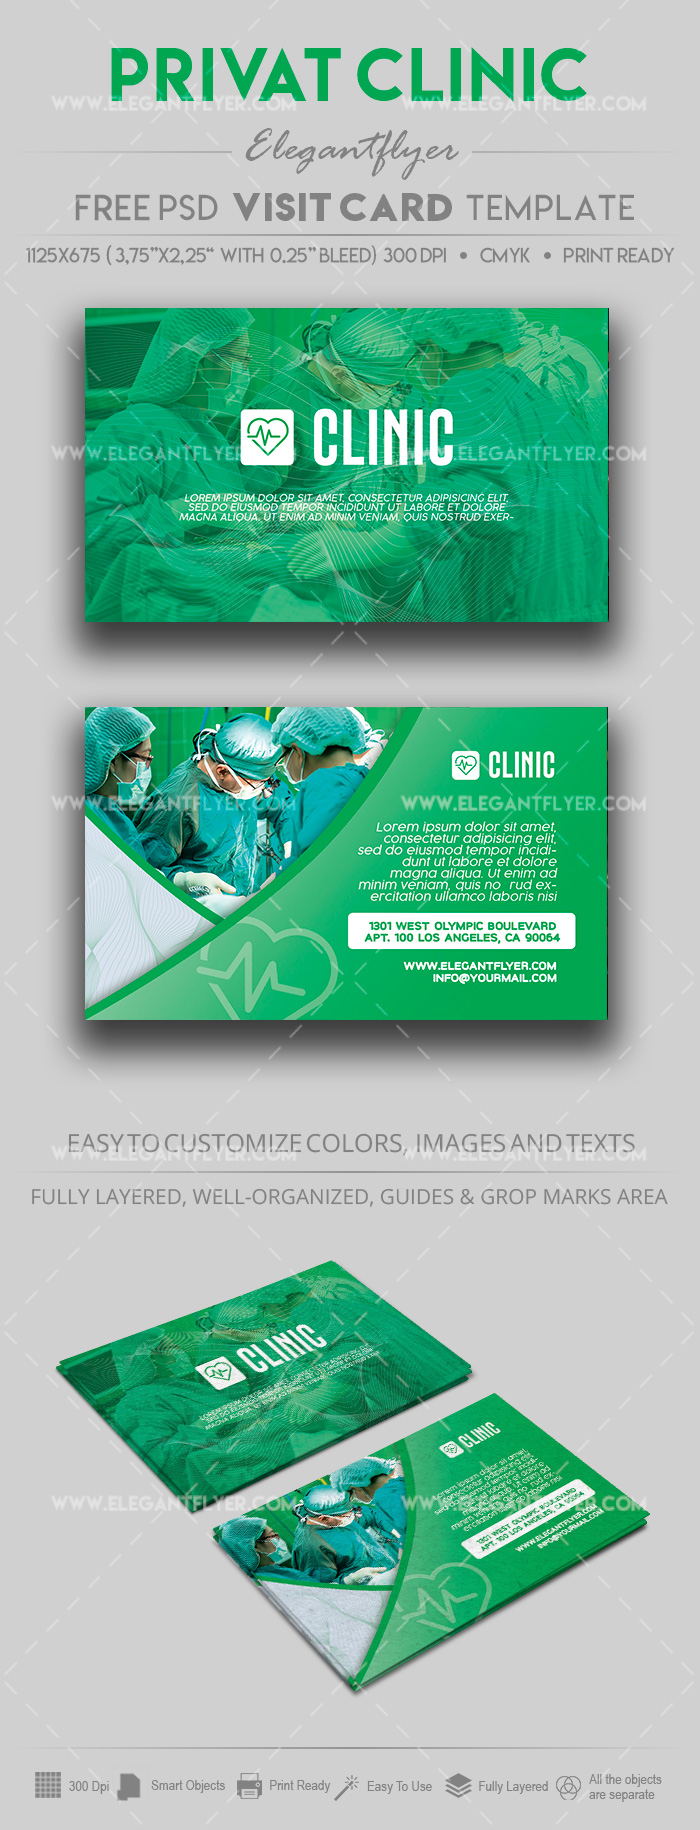 Private Clinic – Free PSD Business Card Template